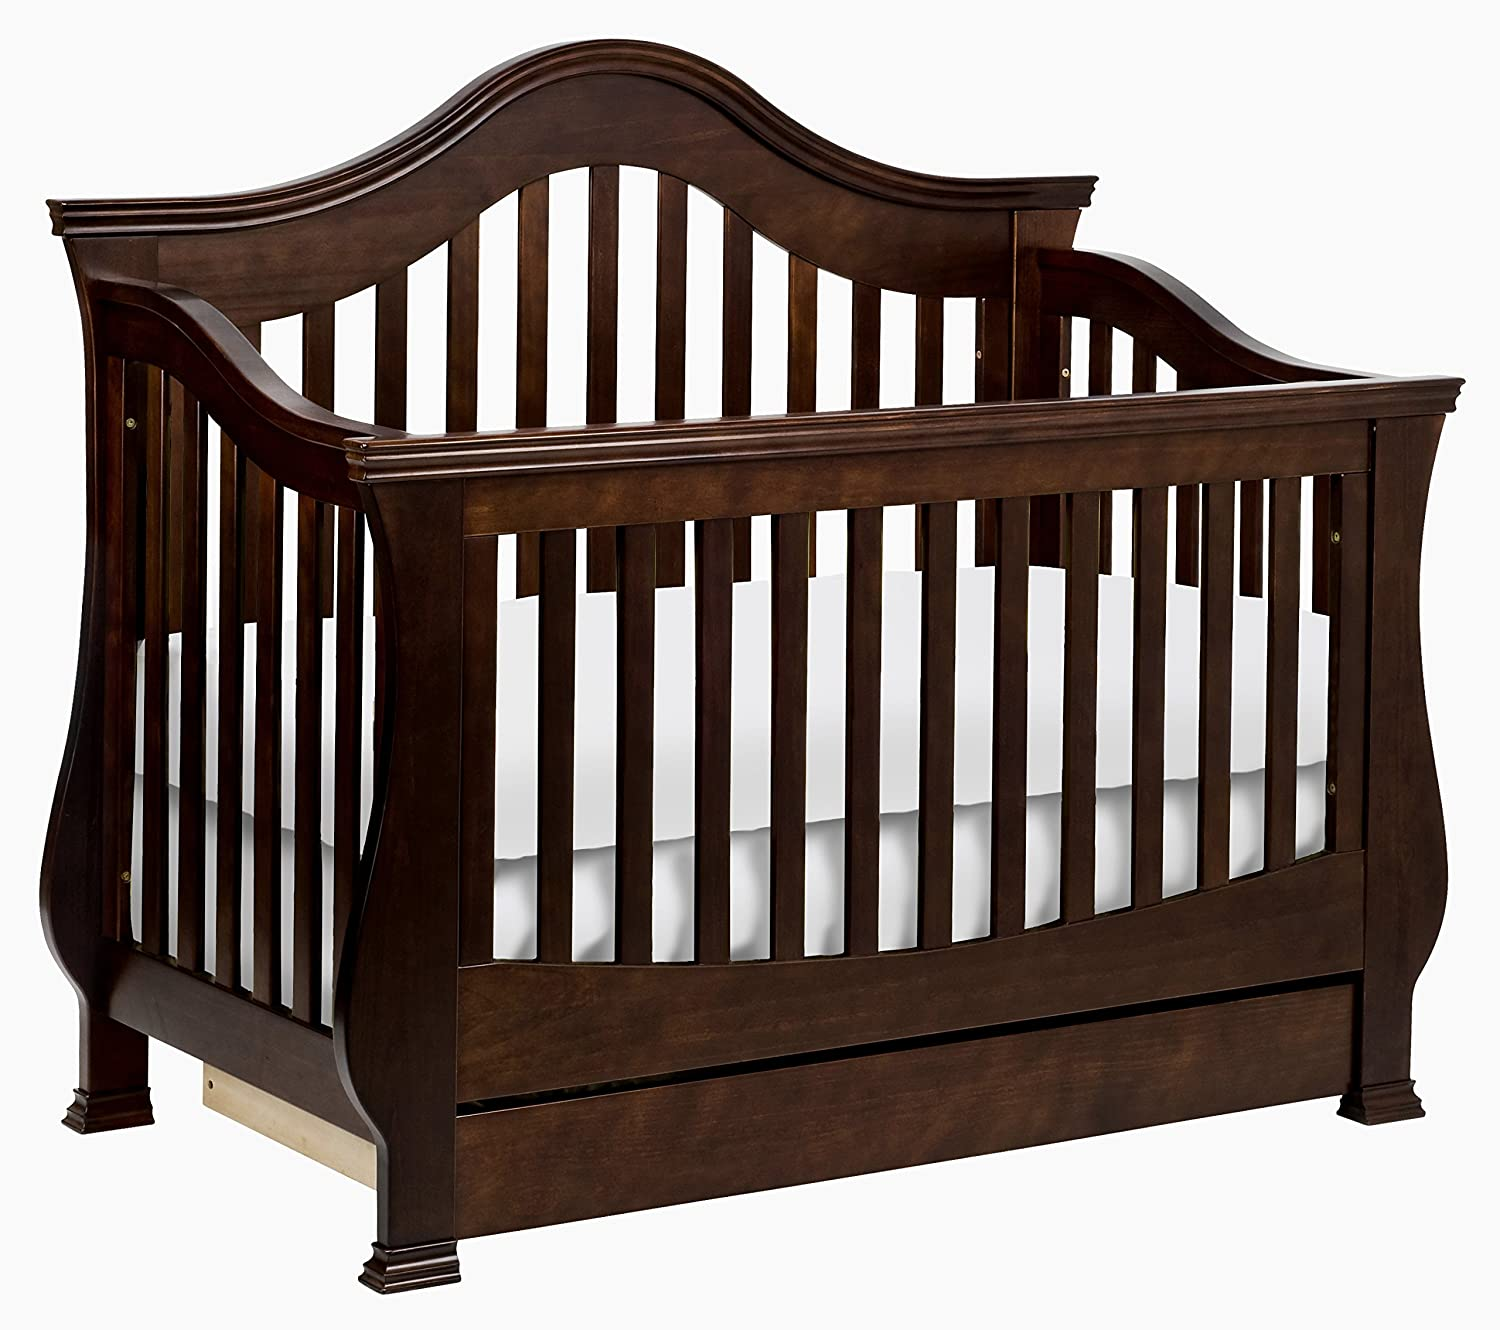 amazoncom million dollar baby classic ashbury 4in1 convertible crib with toddler rail espresso toddler beds baby